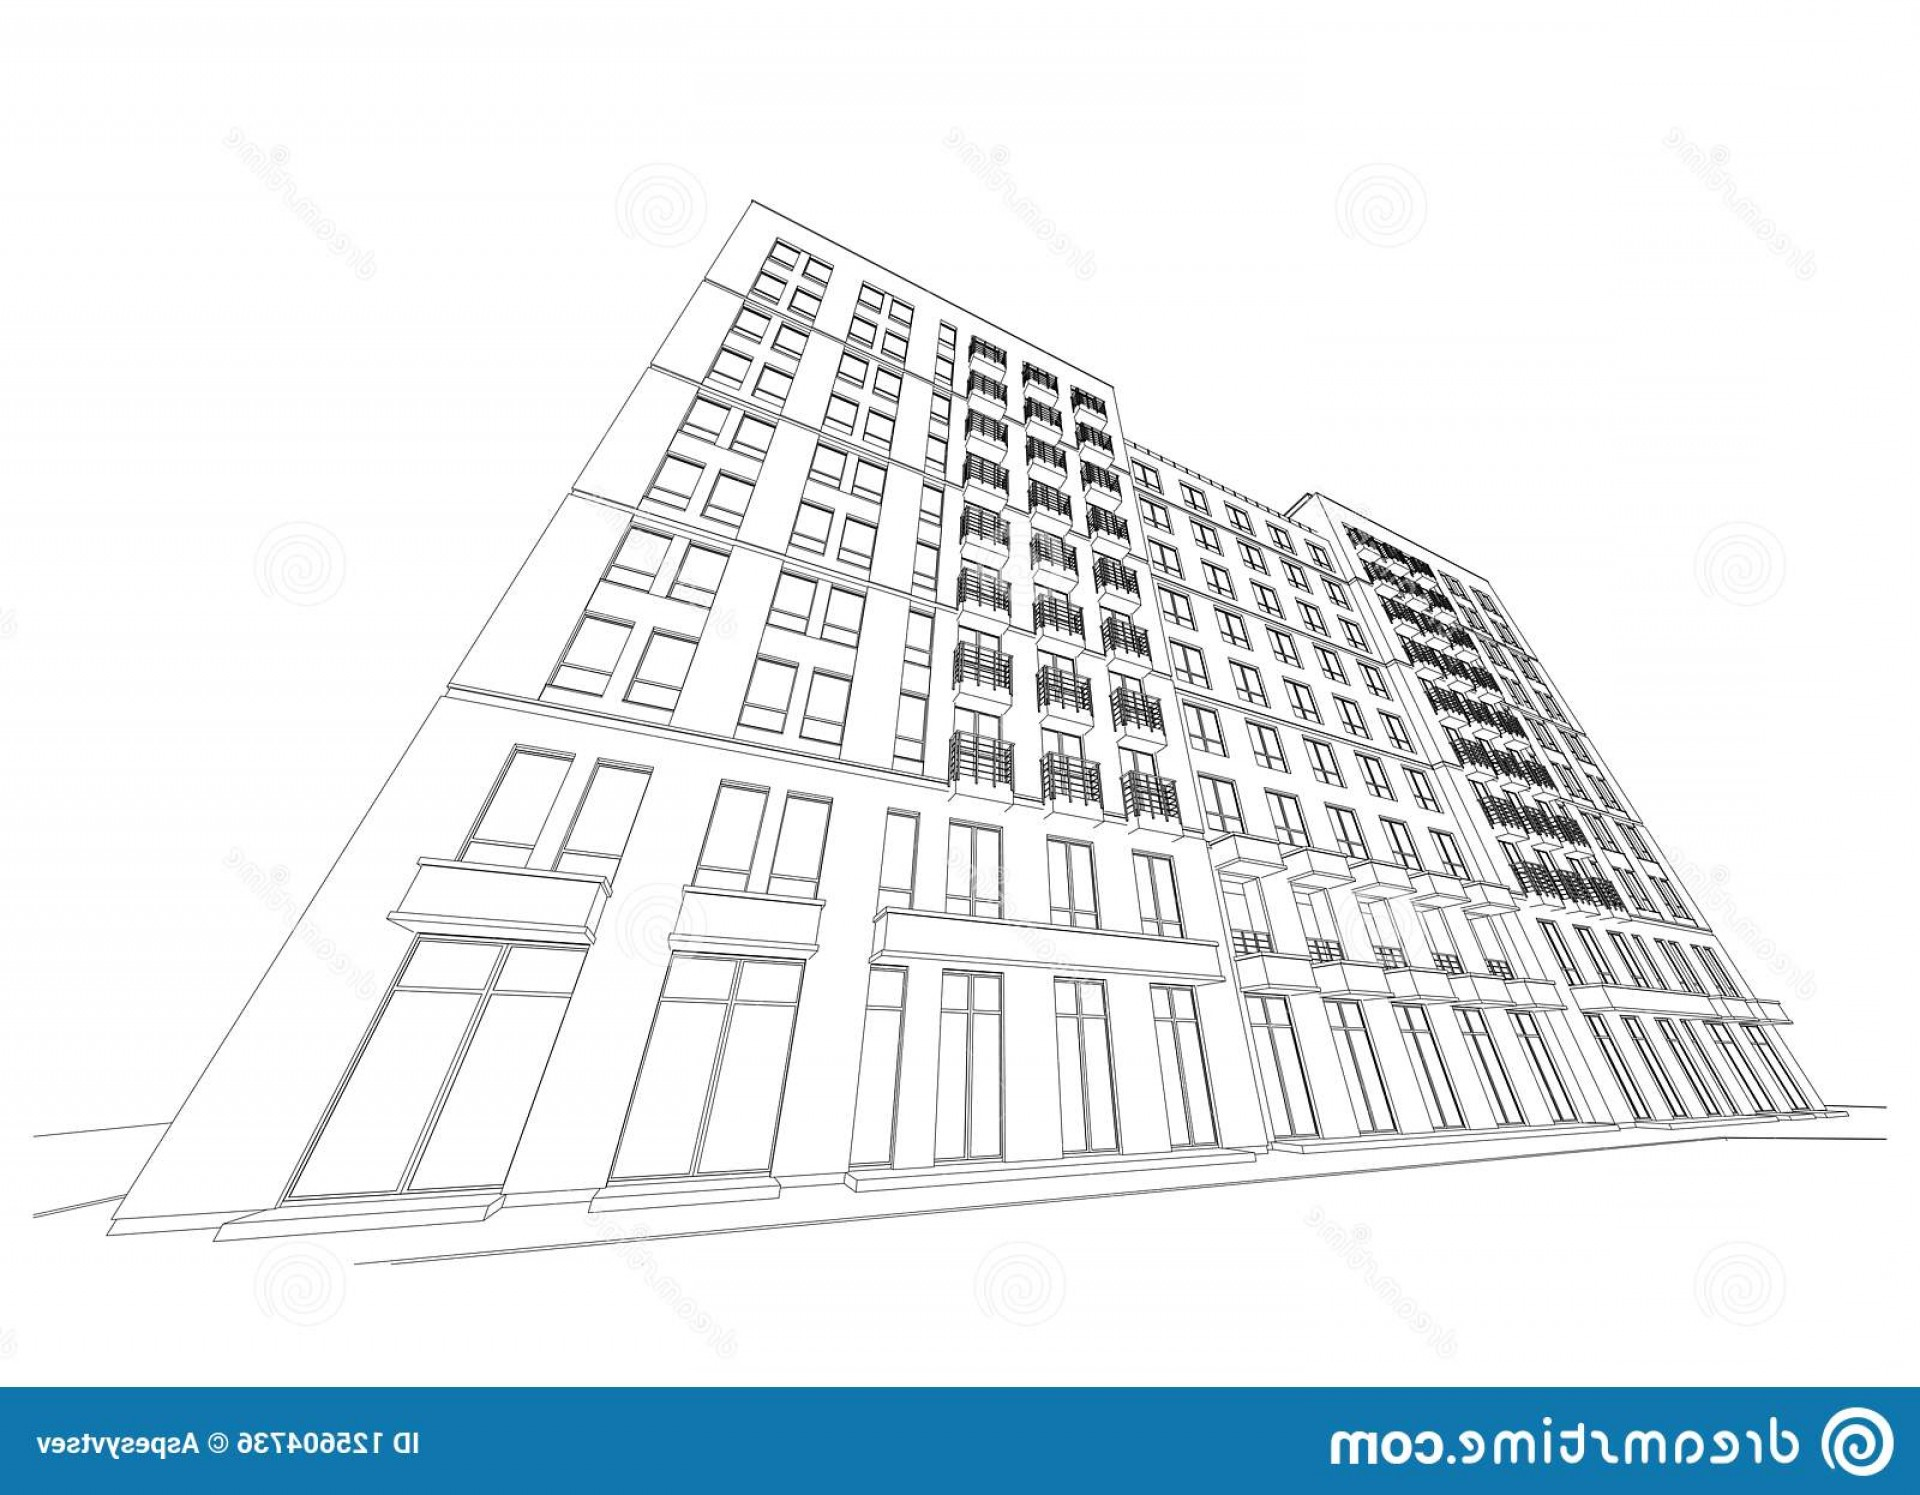 Perspective Vector: Detailed Architectural Plan Multistory Building Diminishing Perspective Vector Illustration Blueprint Image